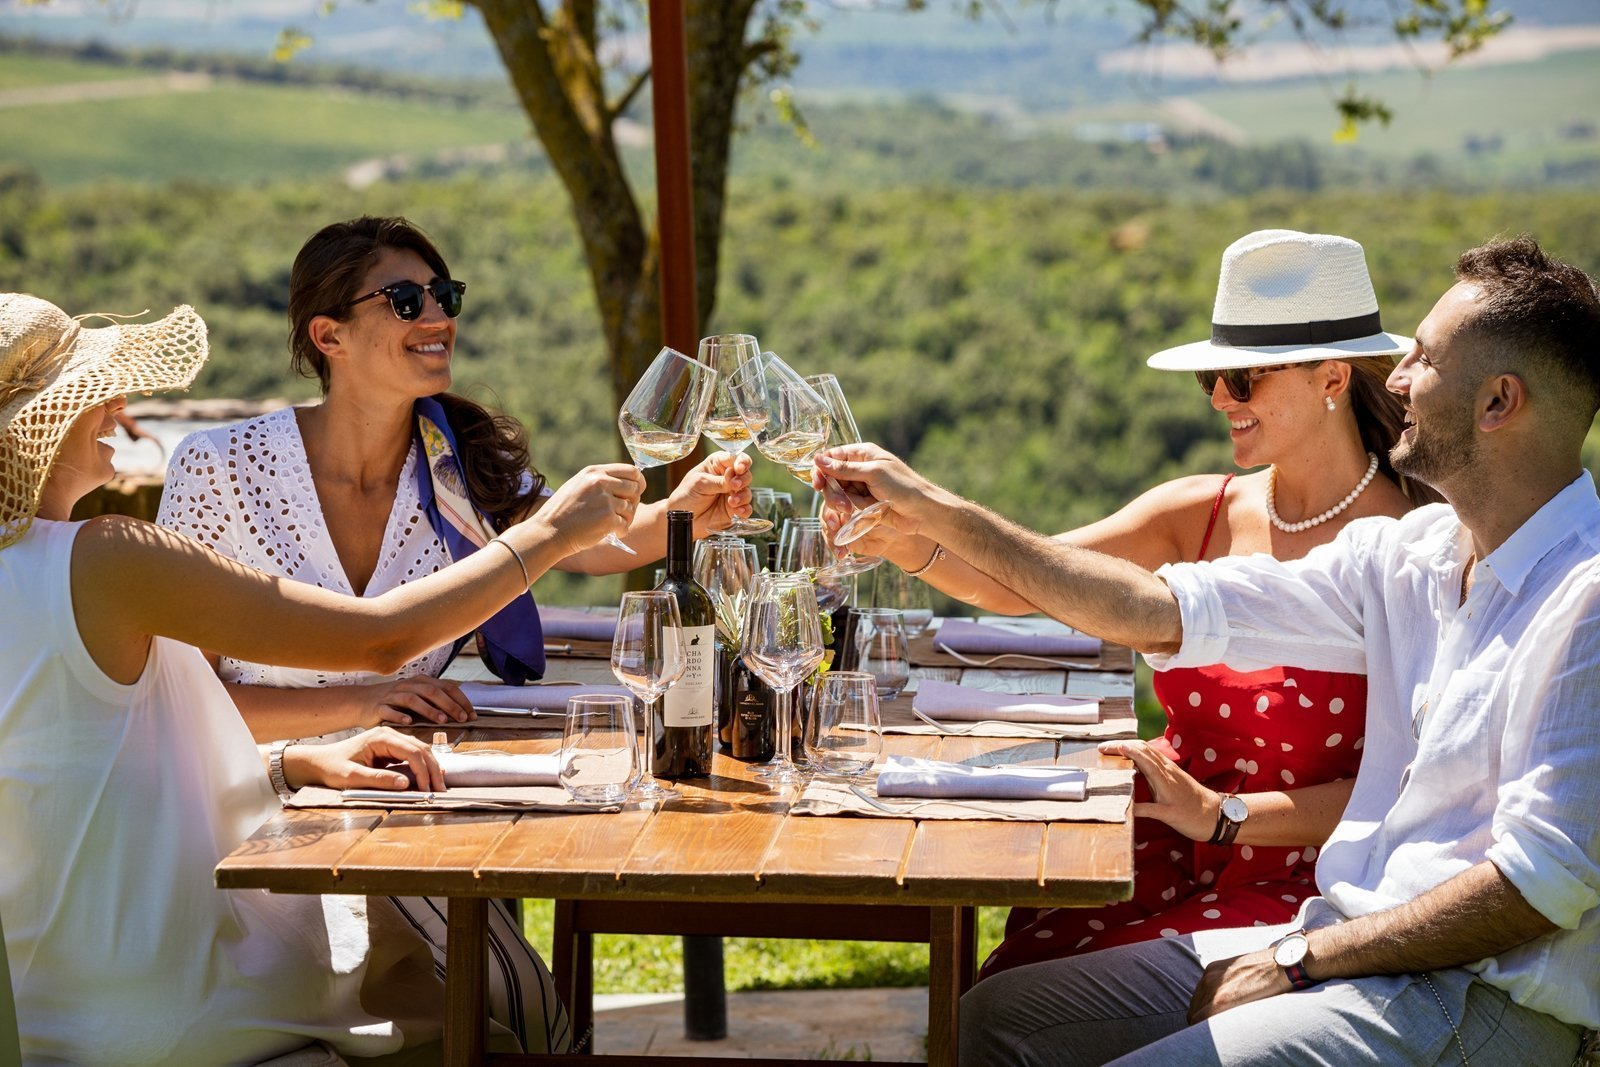 People toasting during the picnic on the vineyard